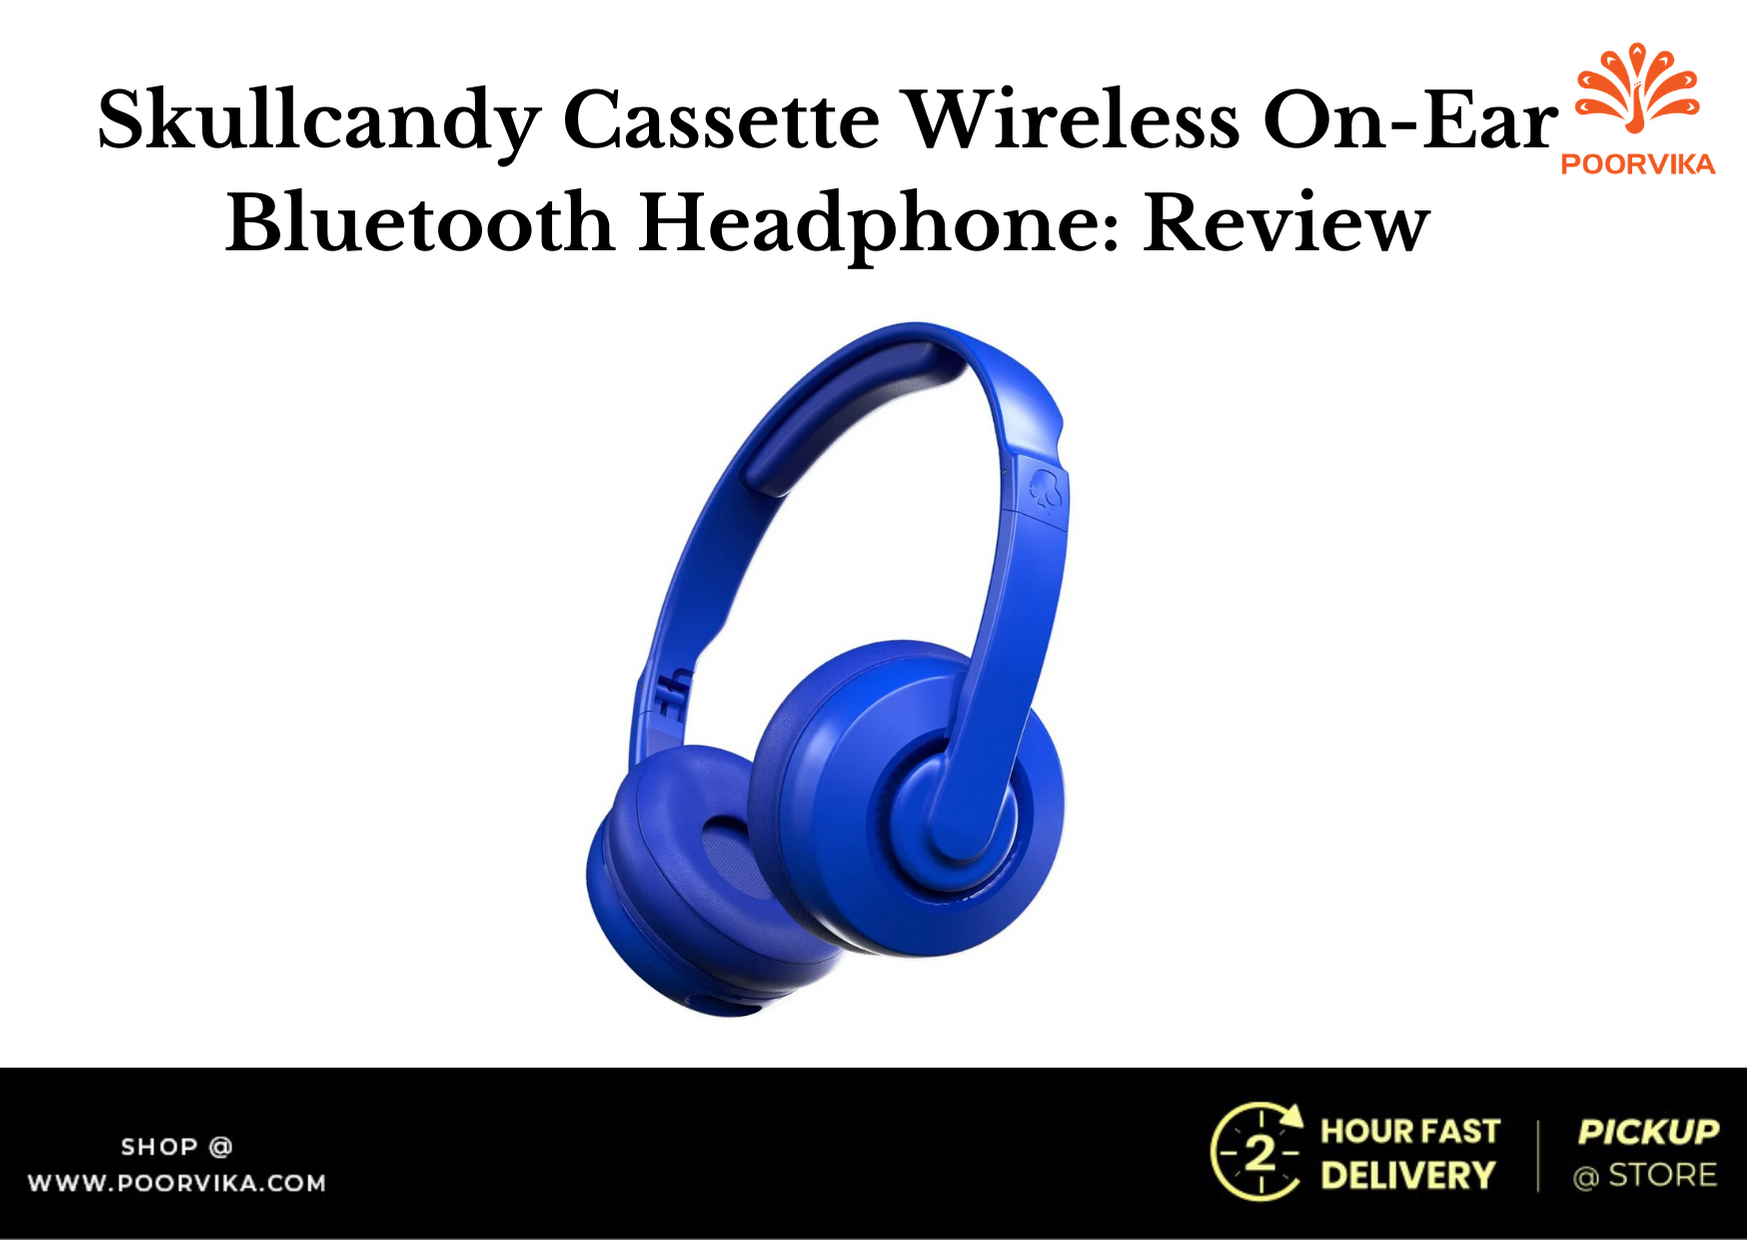 Skullcandy-Cassette-Wireless-On-Ear-Bluetooth-Headphone-Review